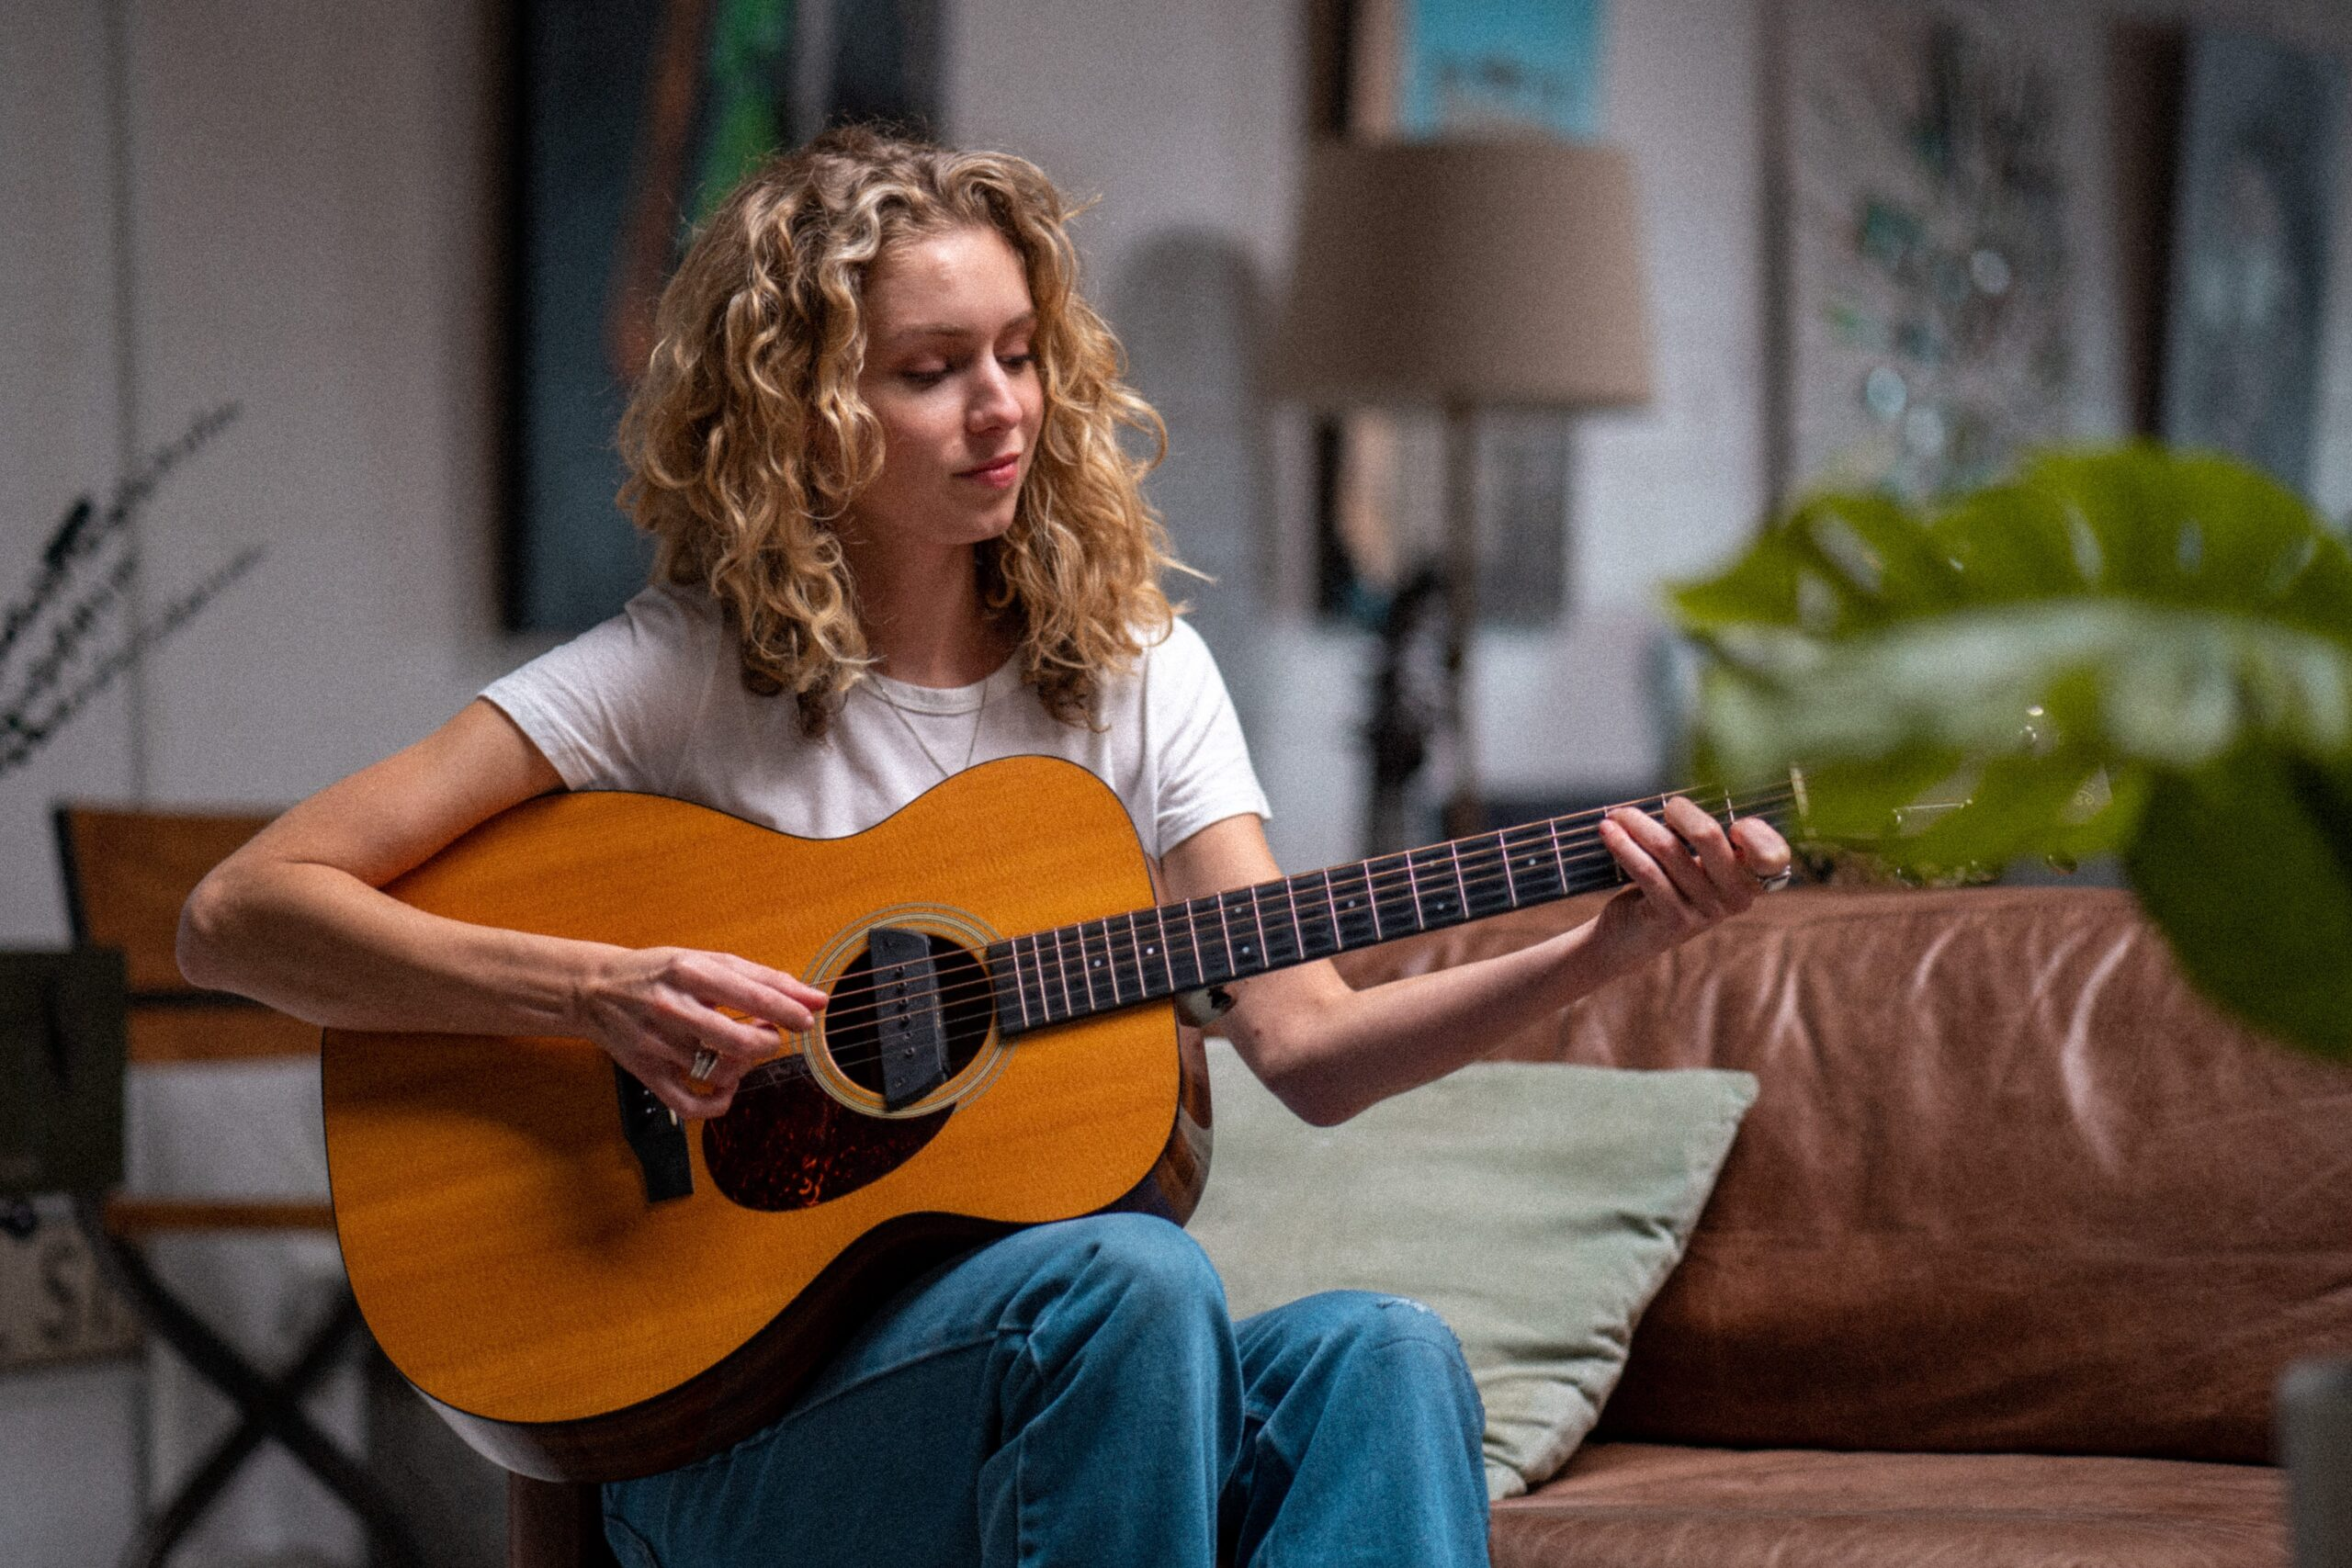 Woman Playing Guitar | The Top 15 Life Enhancing Benefits Of Learning Guitar